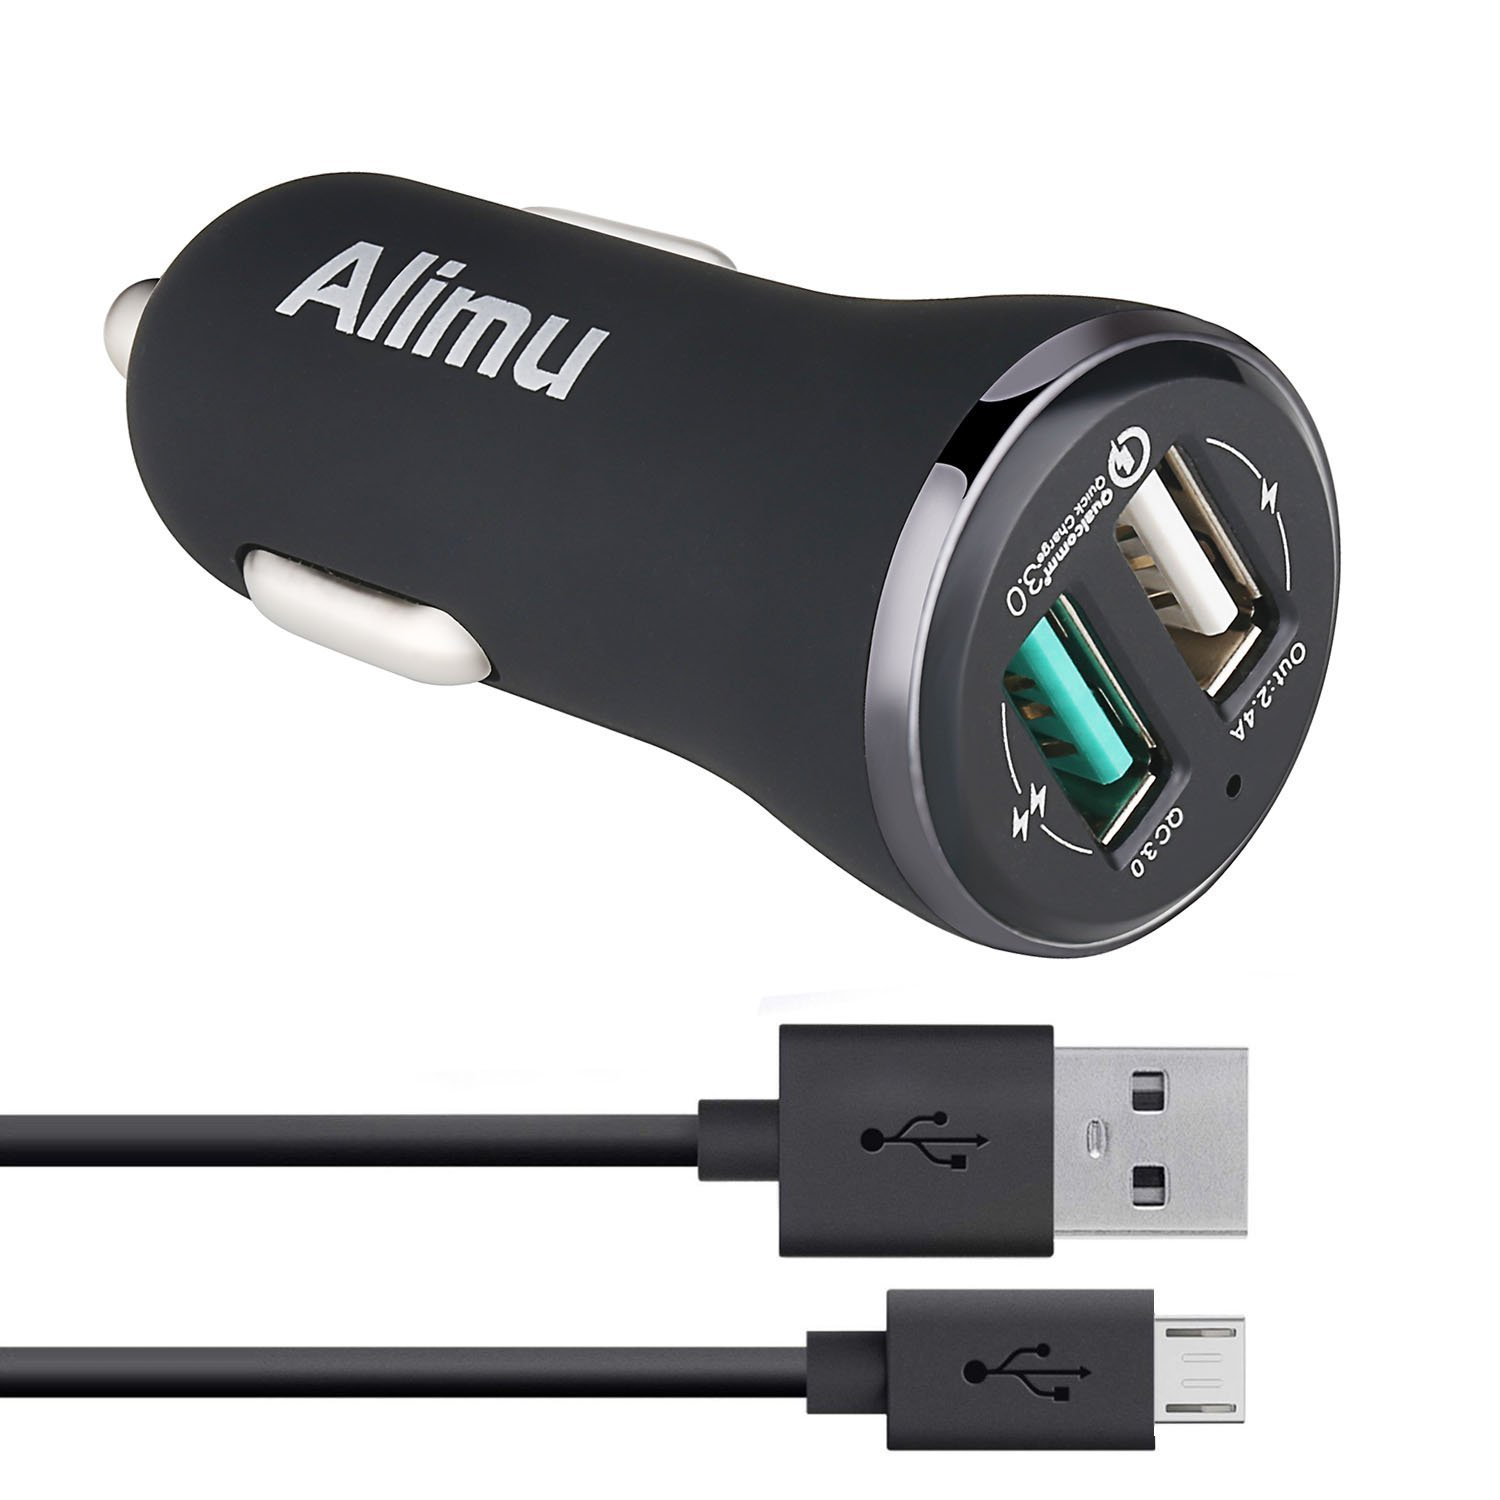 Samsung Galaxy S6 S7 Edge Plus Active Fast Car Charger,Alimu [Quick Charge 3.0] Rapid Charging Adapter for S6 S7,Note 5,HTC One M9 M8 A9,LG V10 ...